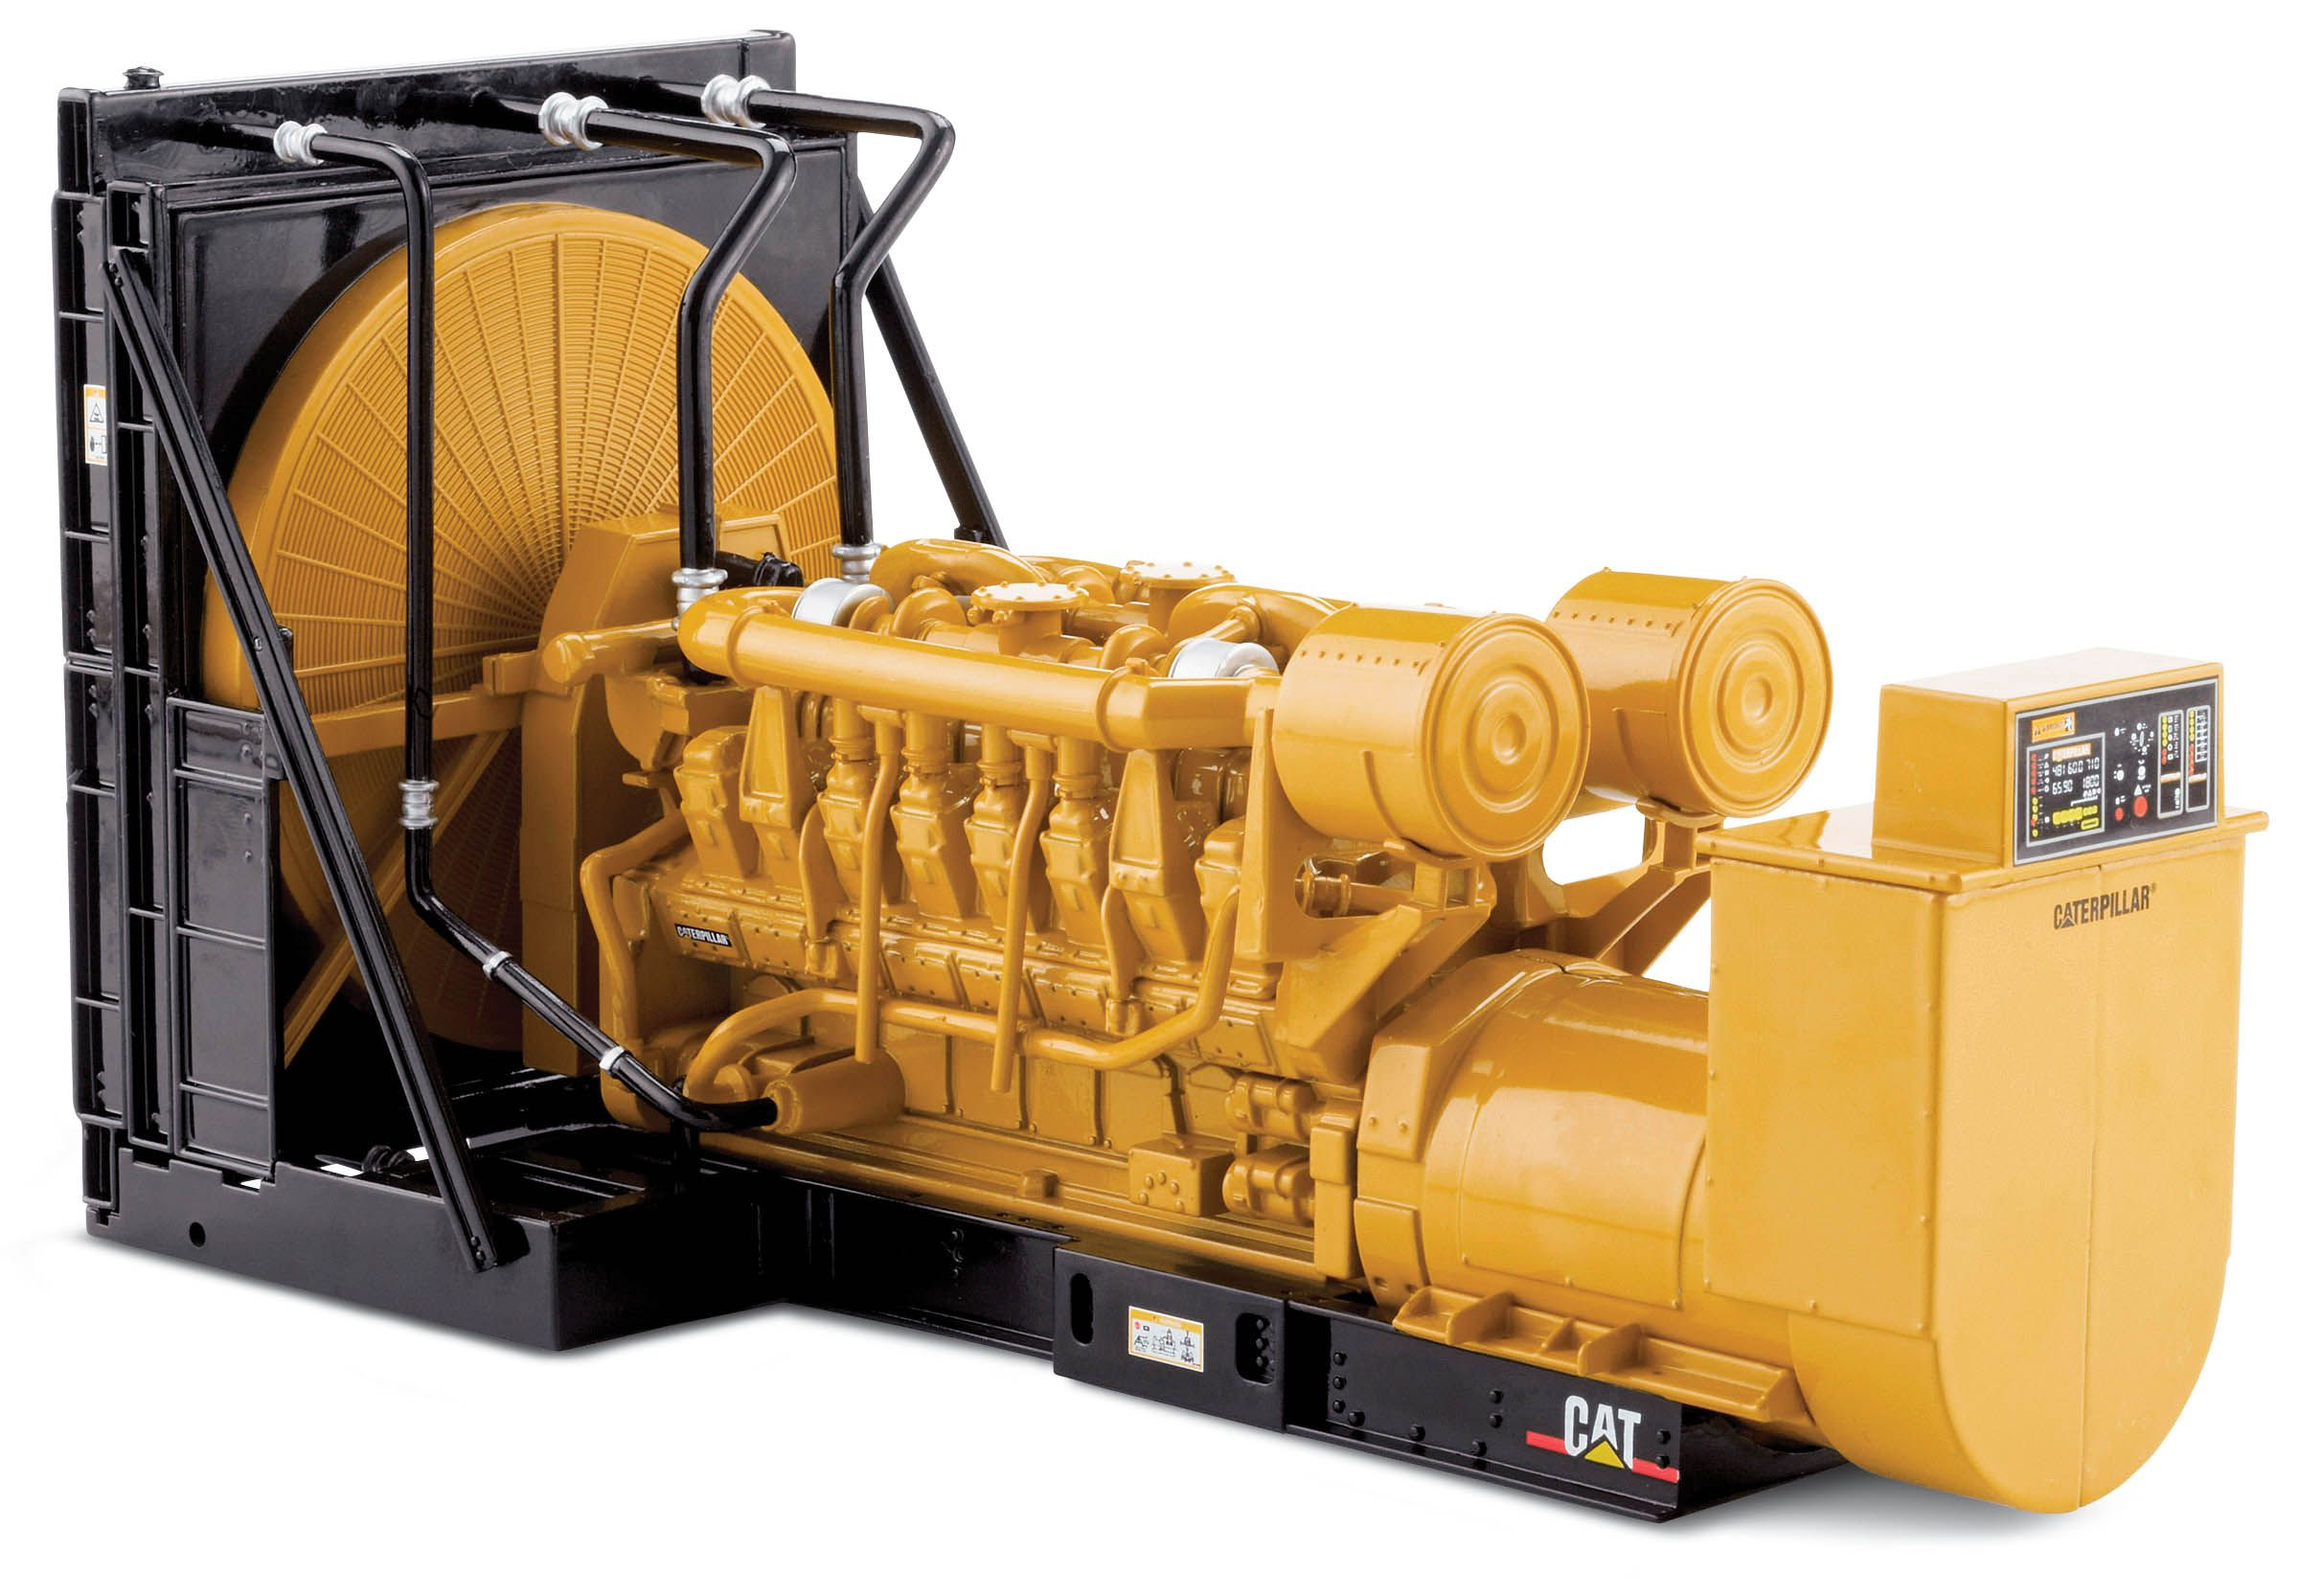 At CAT both 50 Hz and 60 Hz gas generators are available